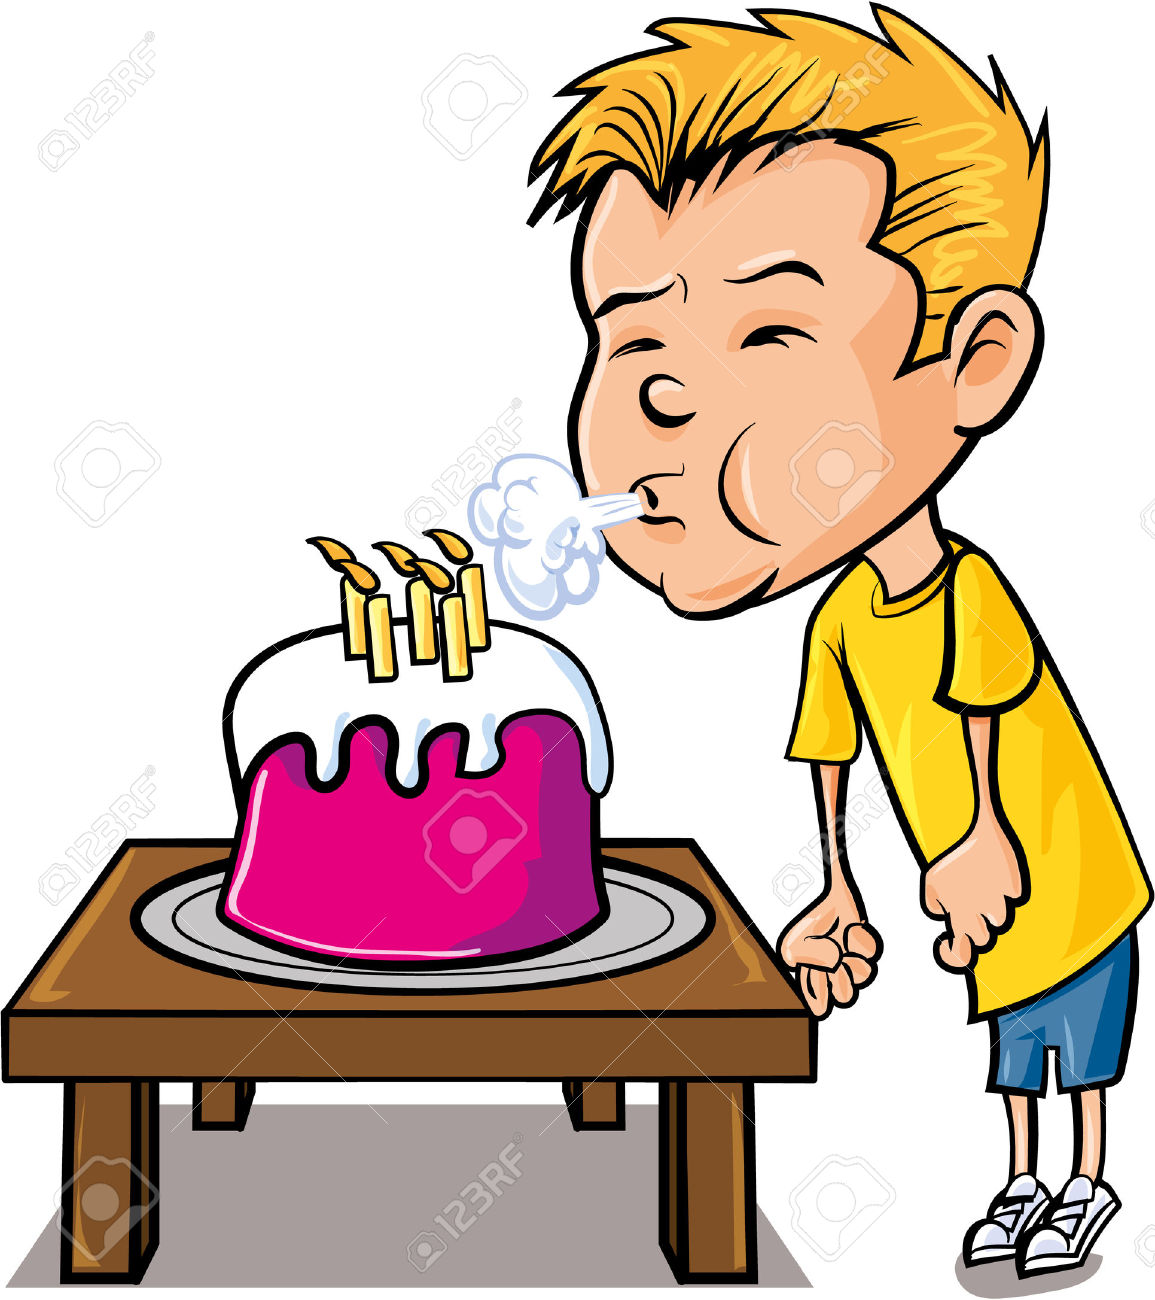 Blowing out candles clipart.